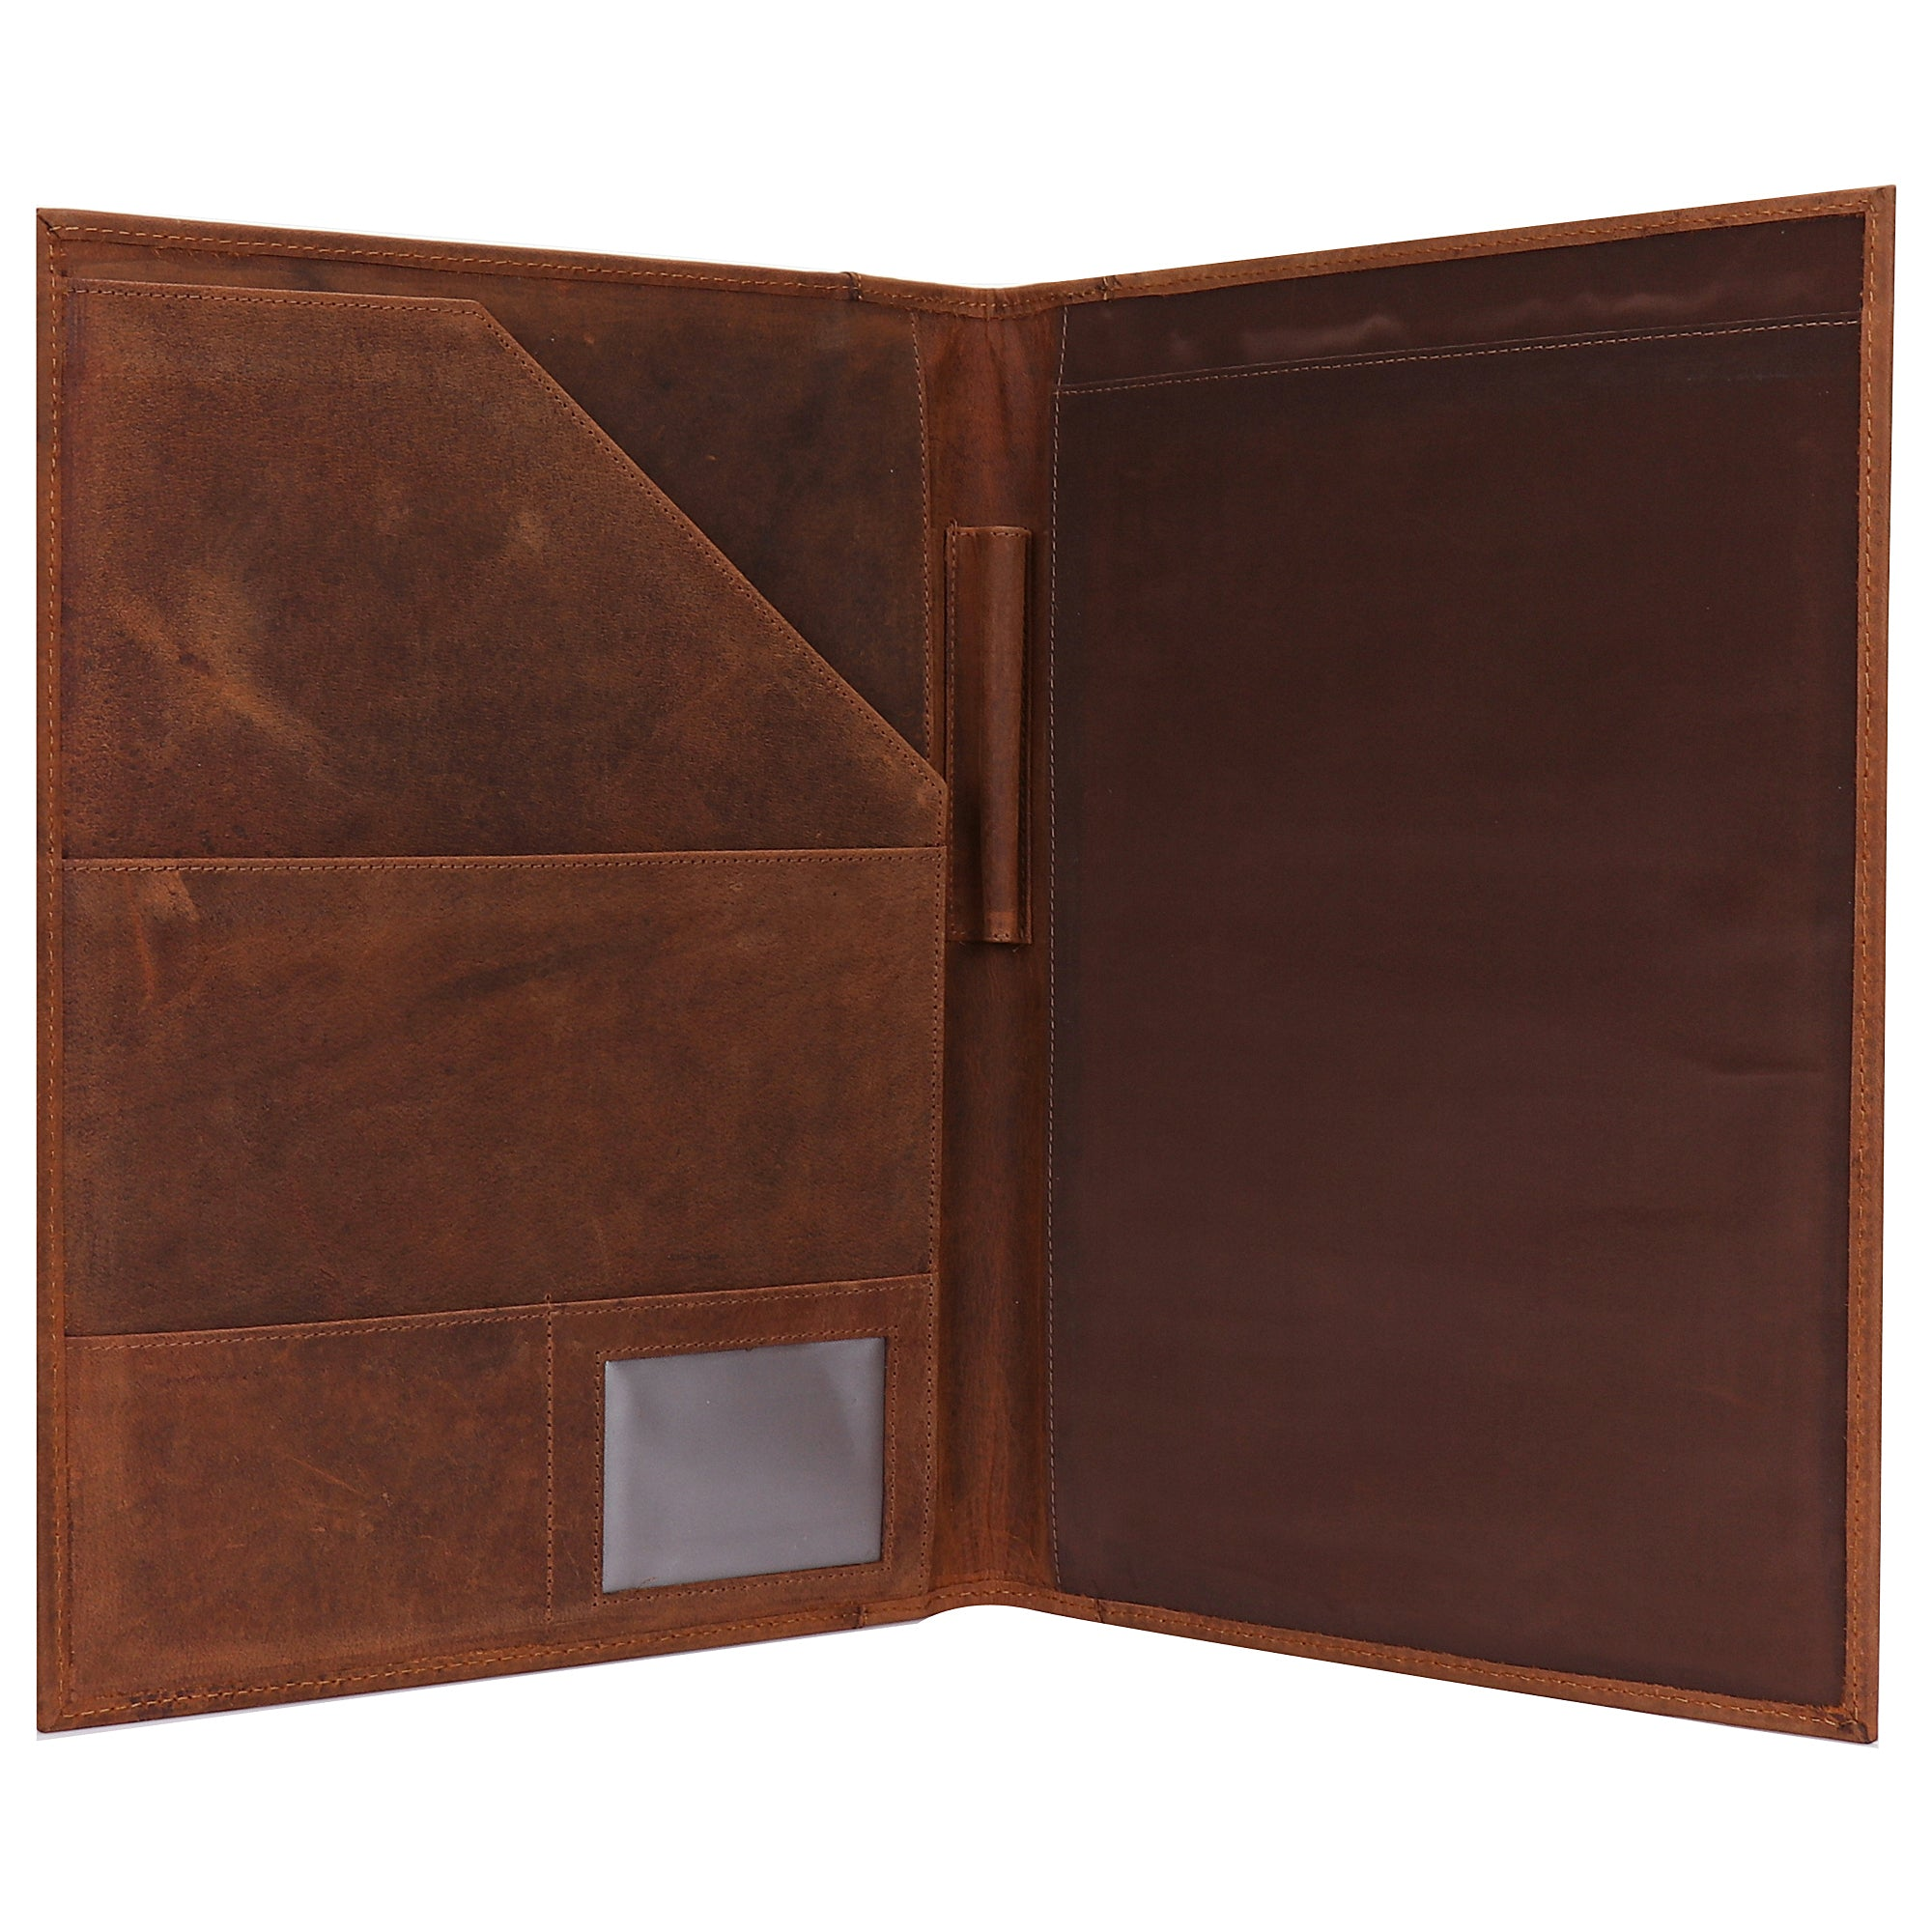 Royal Handmade Leather Portfolio Professional Organizer Office File Folder (Brown)